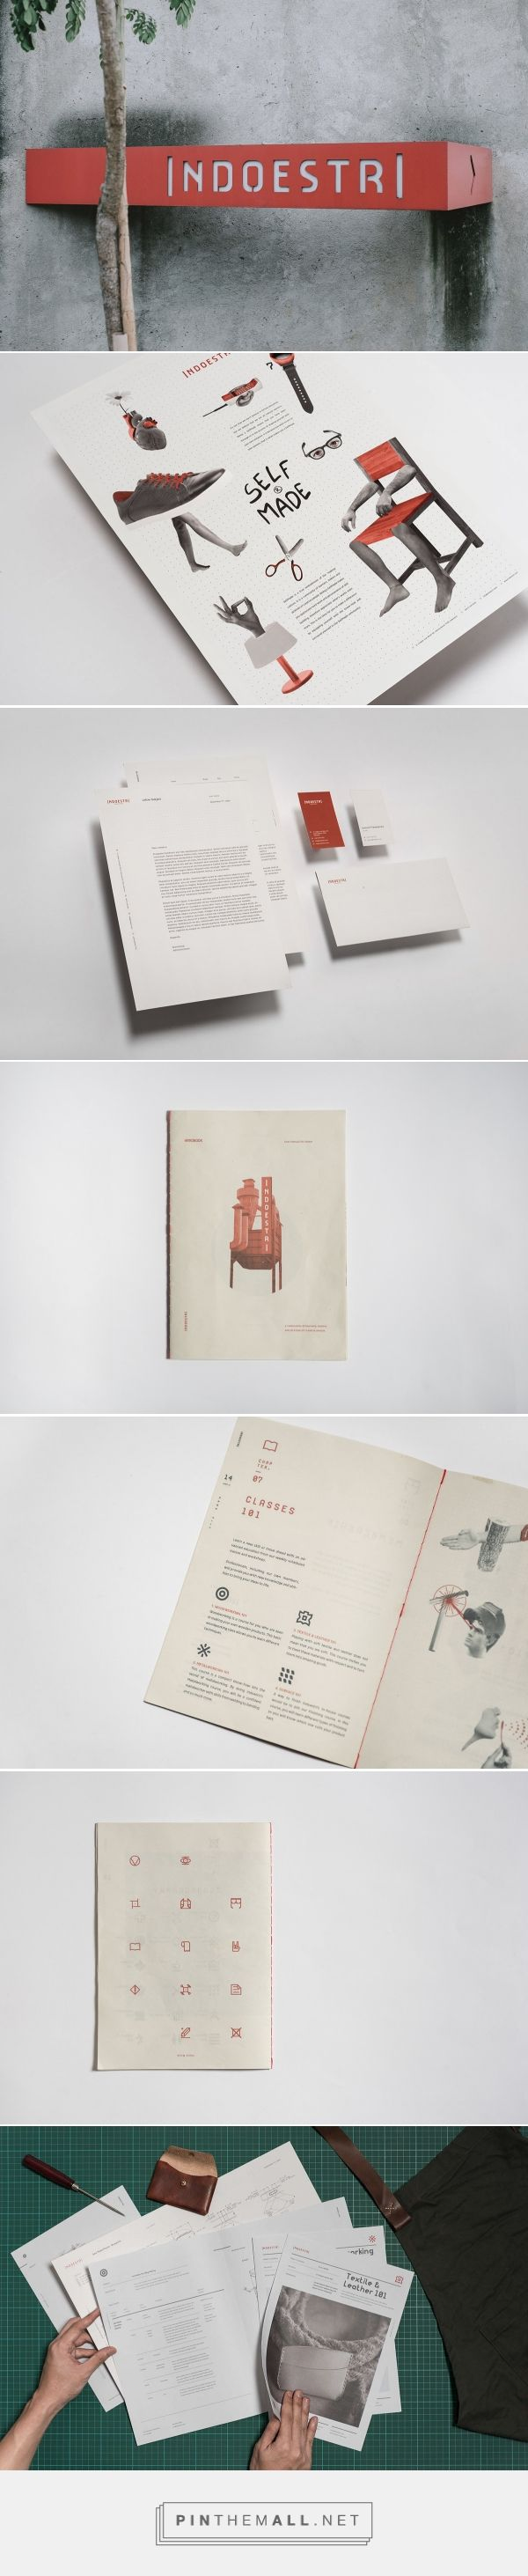 Indoestri Makerspace on Behance... - a grouped images picture - Pin Them All